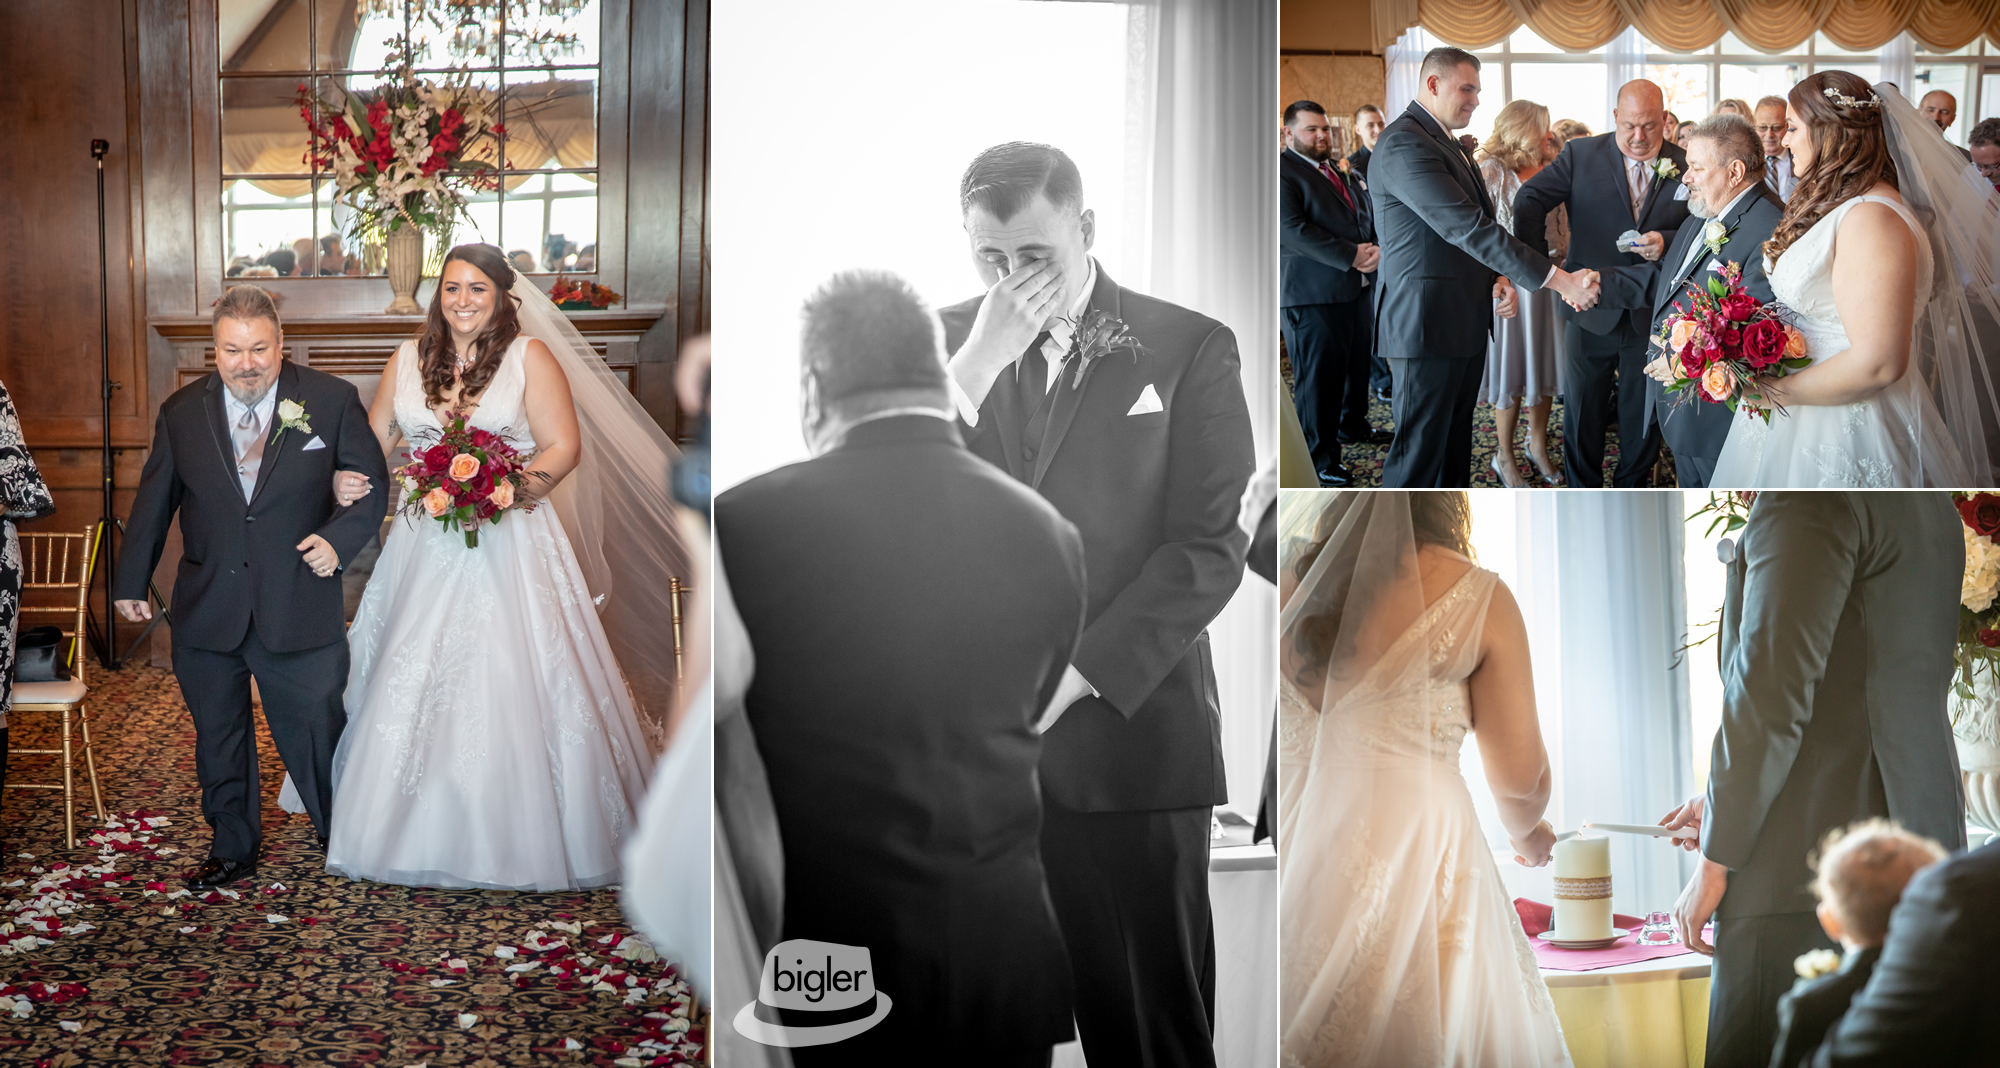 20181110_-_14_-_Amanda_and_Michael,_Albany_Country_Club,_Wedding_Photos